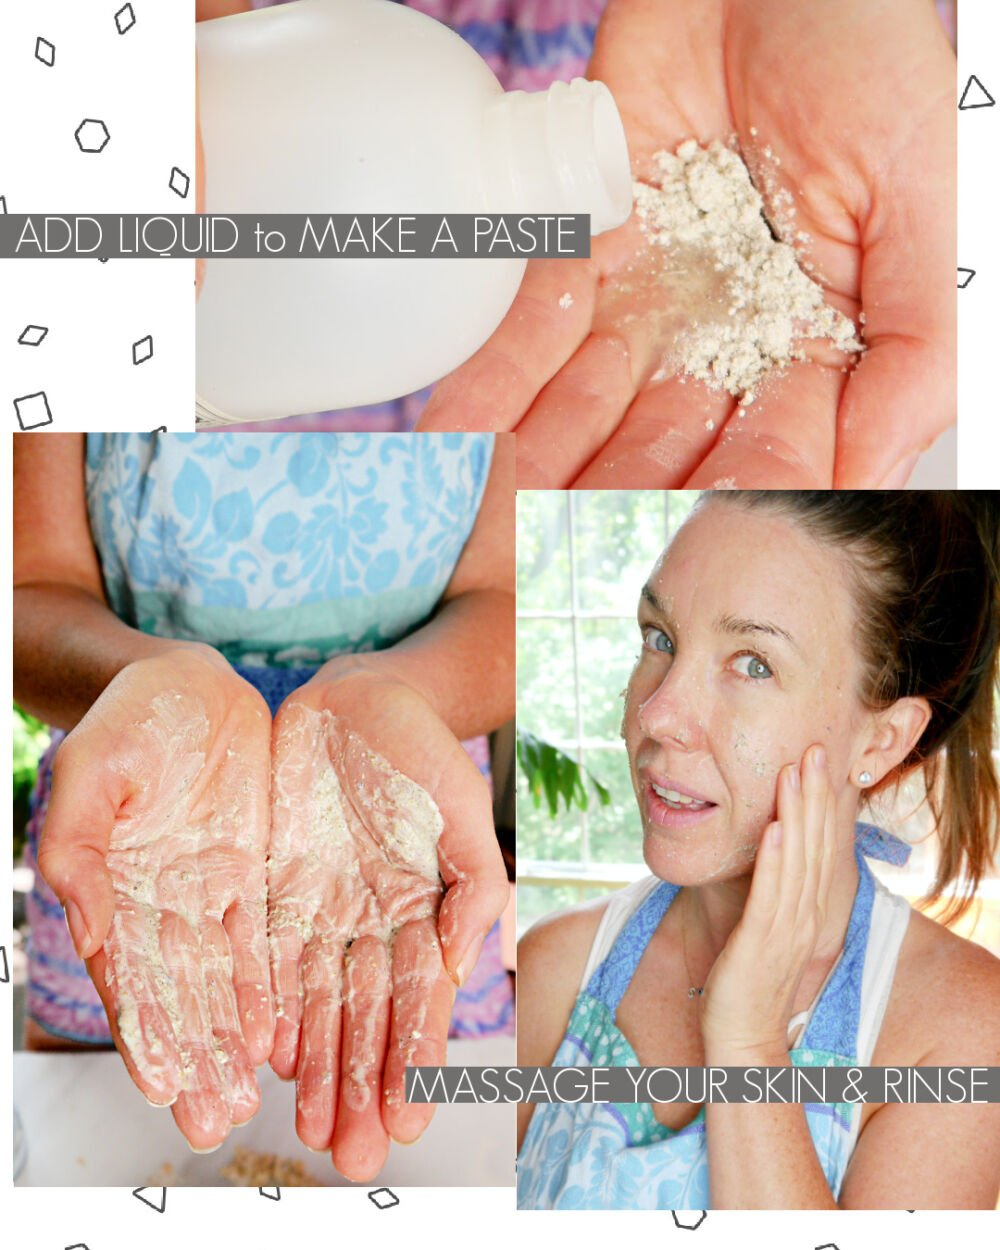 How to Use DIY Cleansing Grains